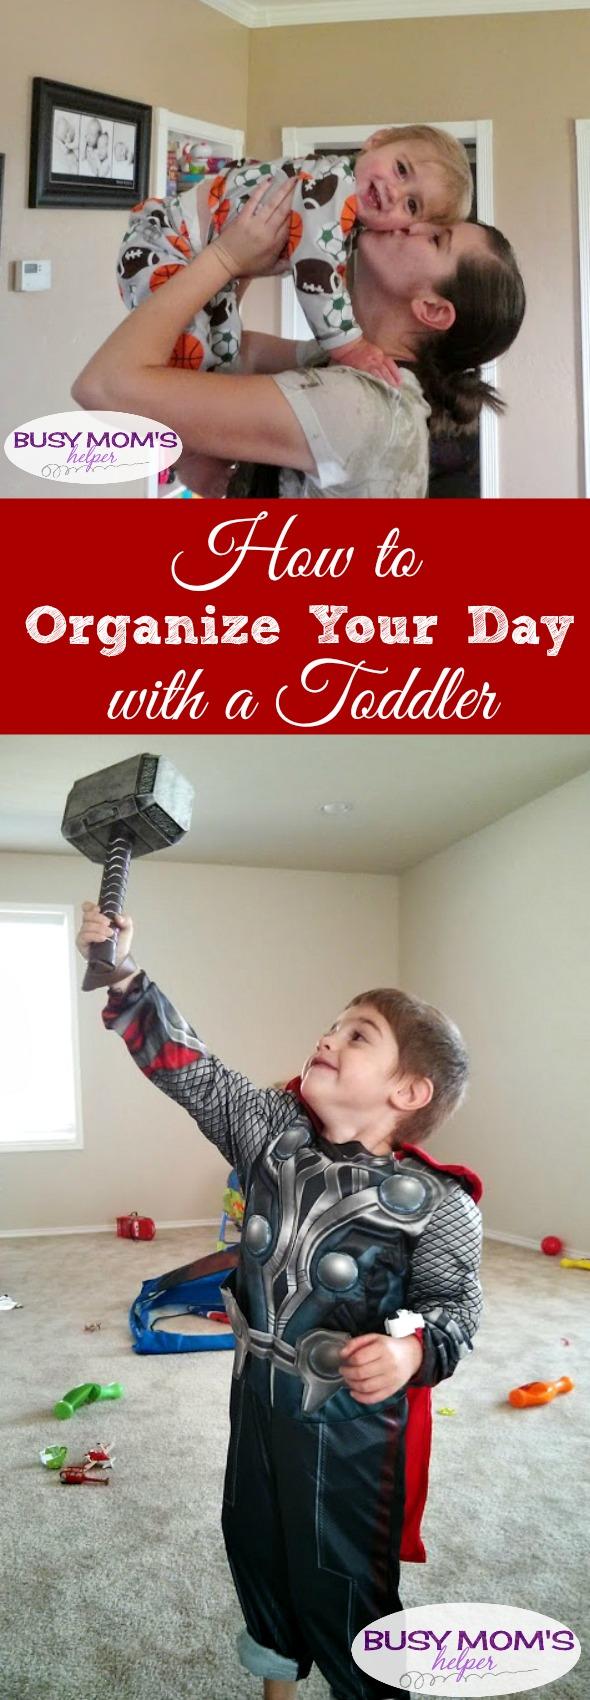 Tips on How to Organize Your Day with a Toddler #parenting #organize #home #toddlers